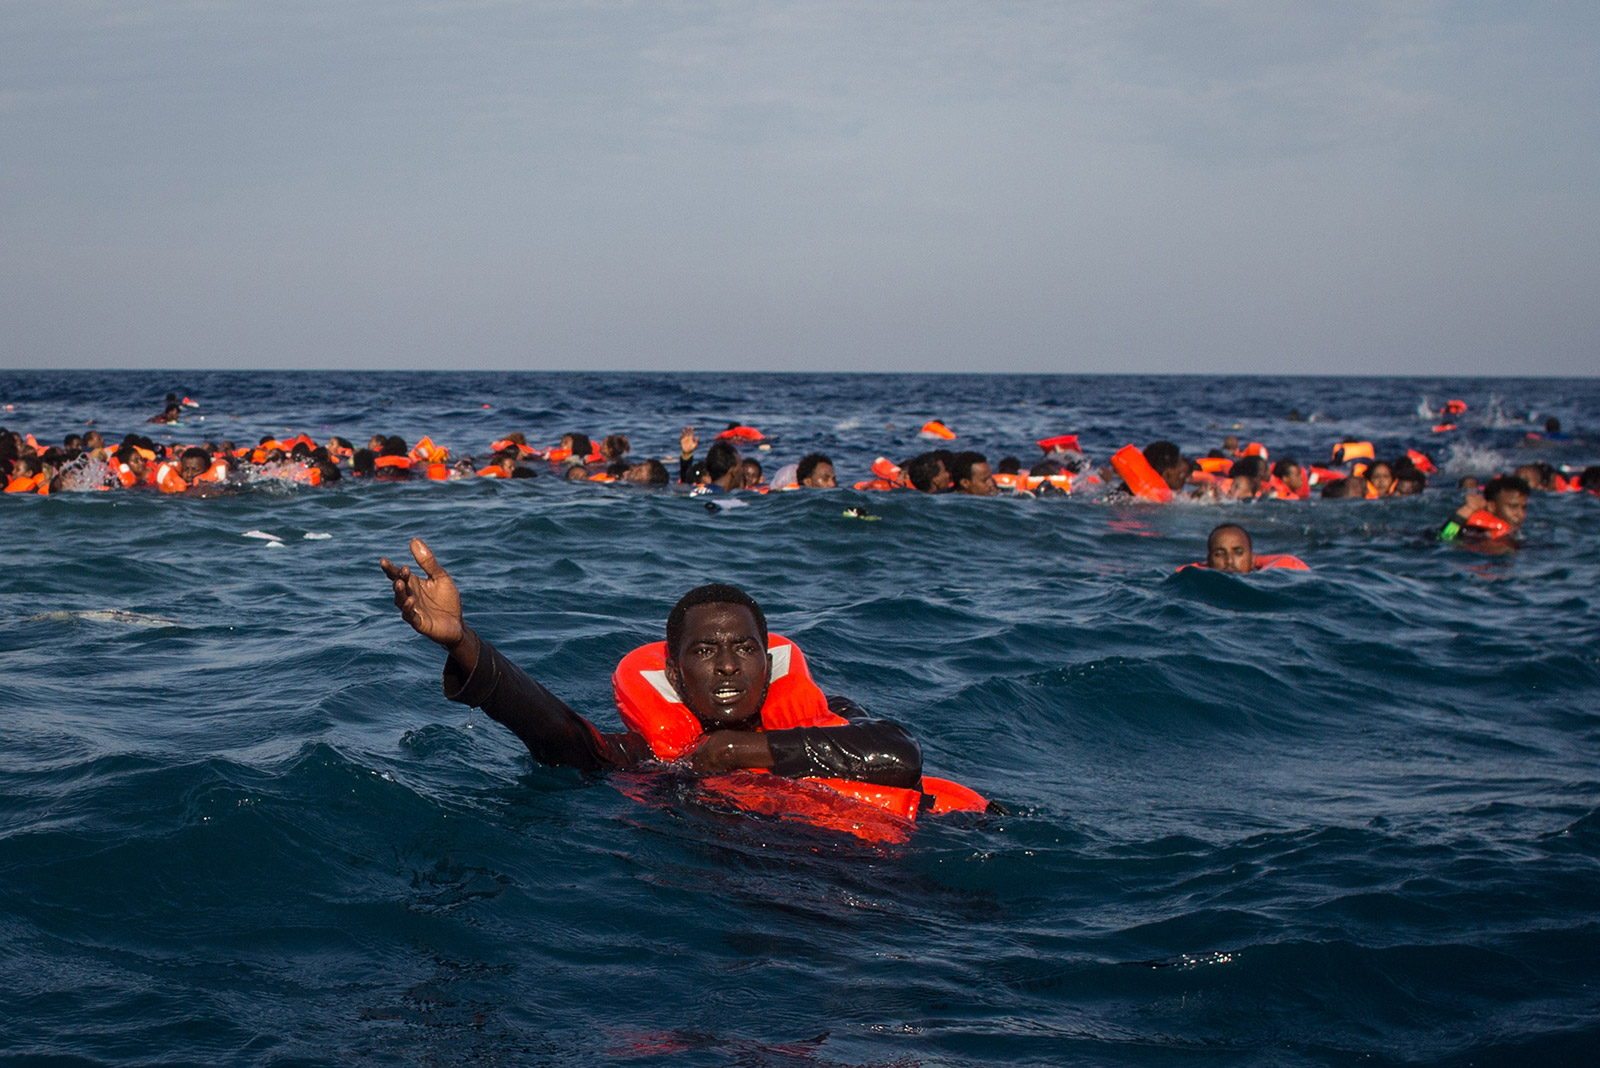 ls-model 911 25 LAMPEDUSA, ITALY - MAY 24: Refugees and migrants are seen swimming and  yelling for